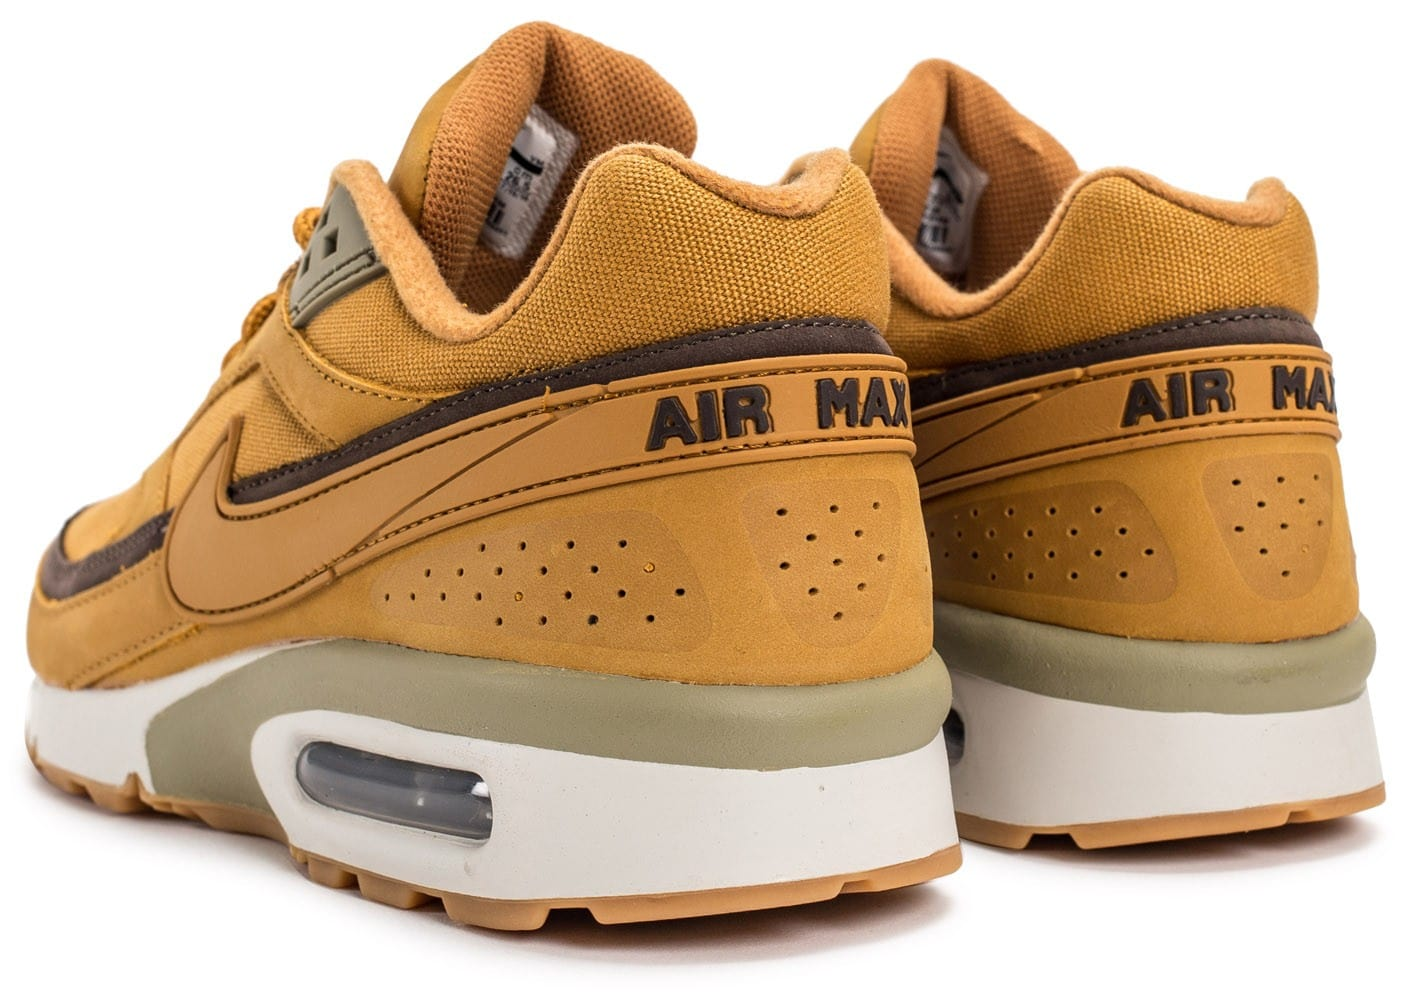 soldes nike air max bw wheat chaussures homme chausport. Black Bedroom Furniture Sets. Home Design Ideas